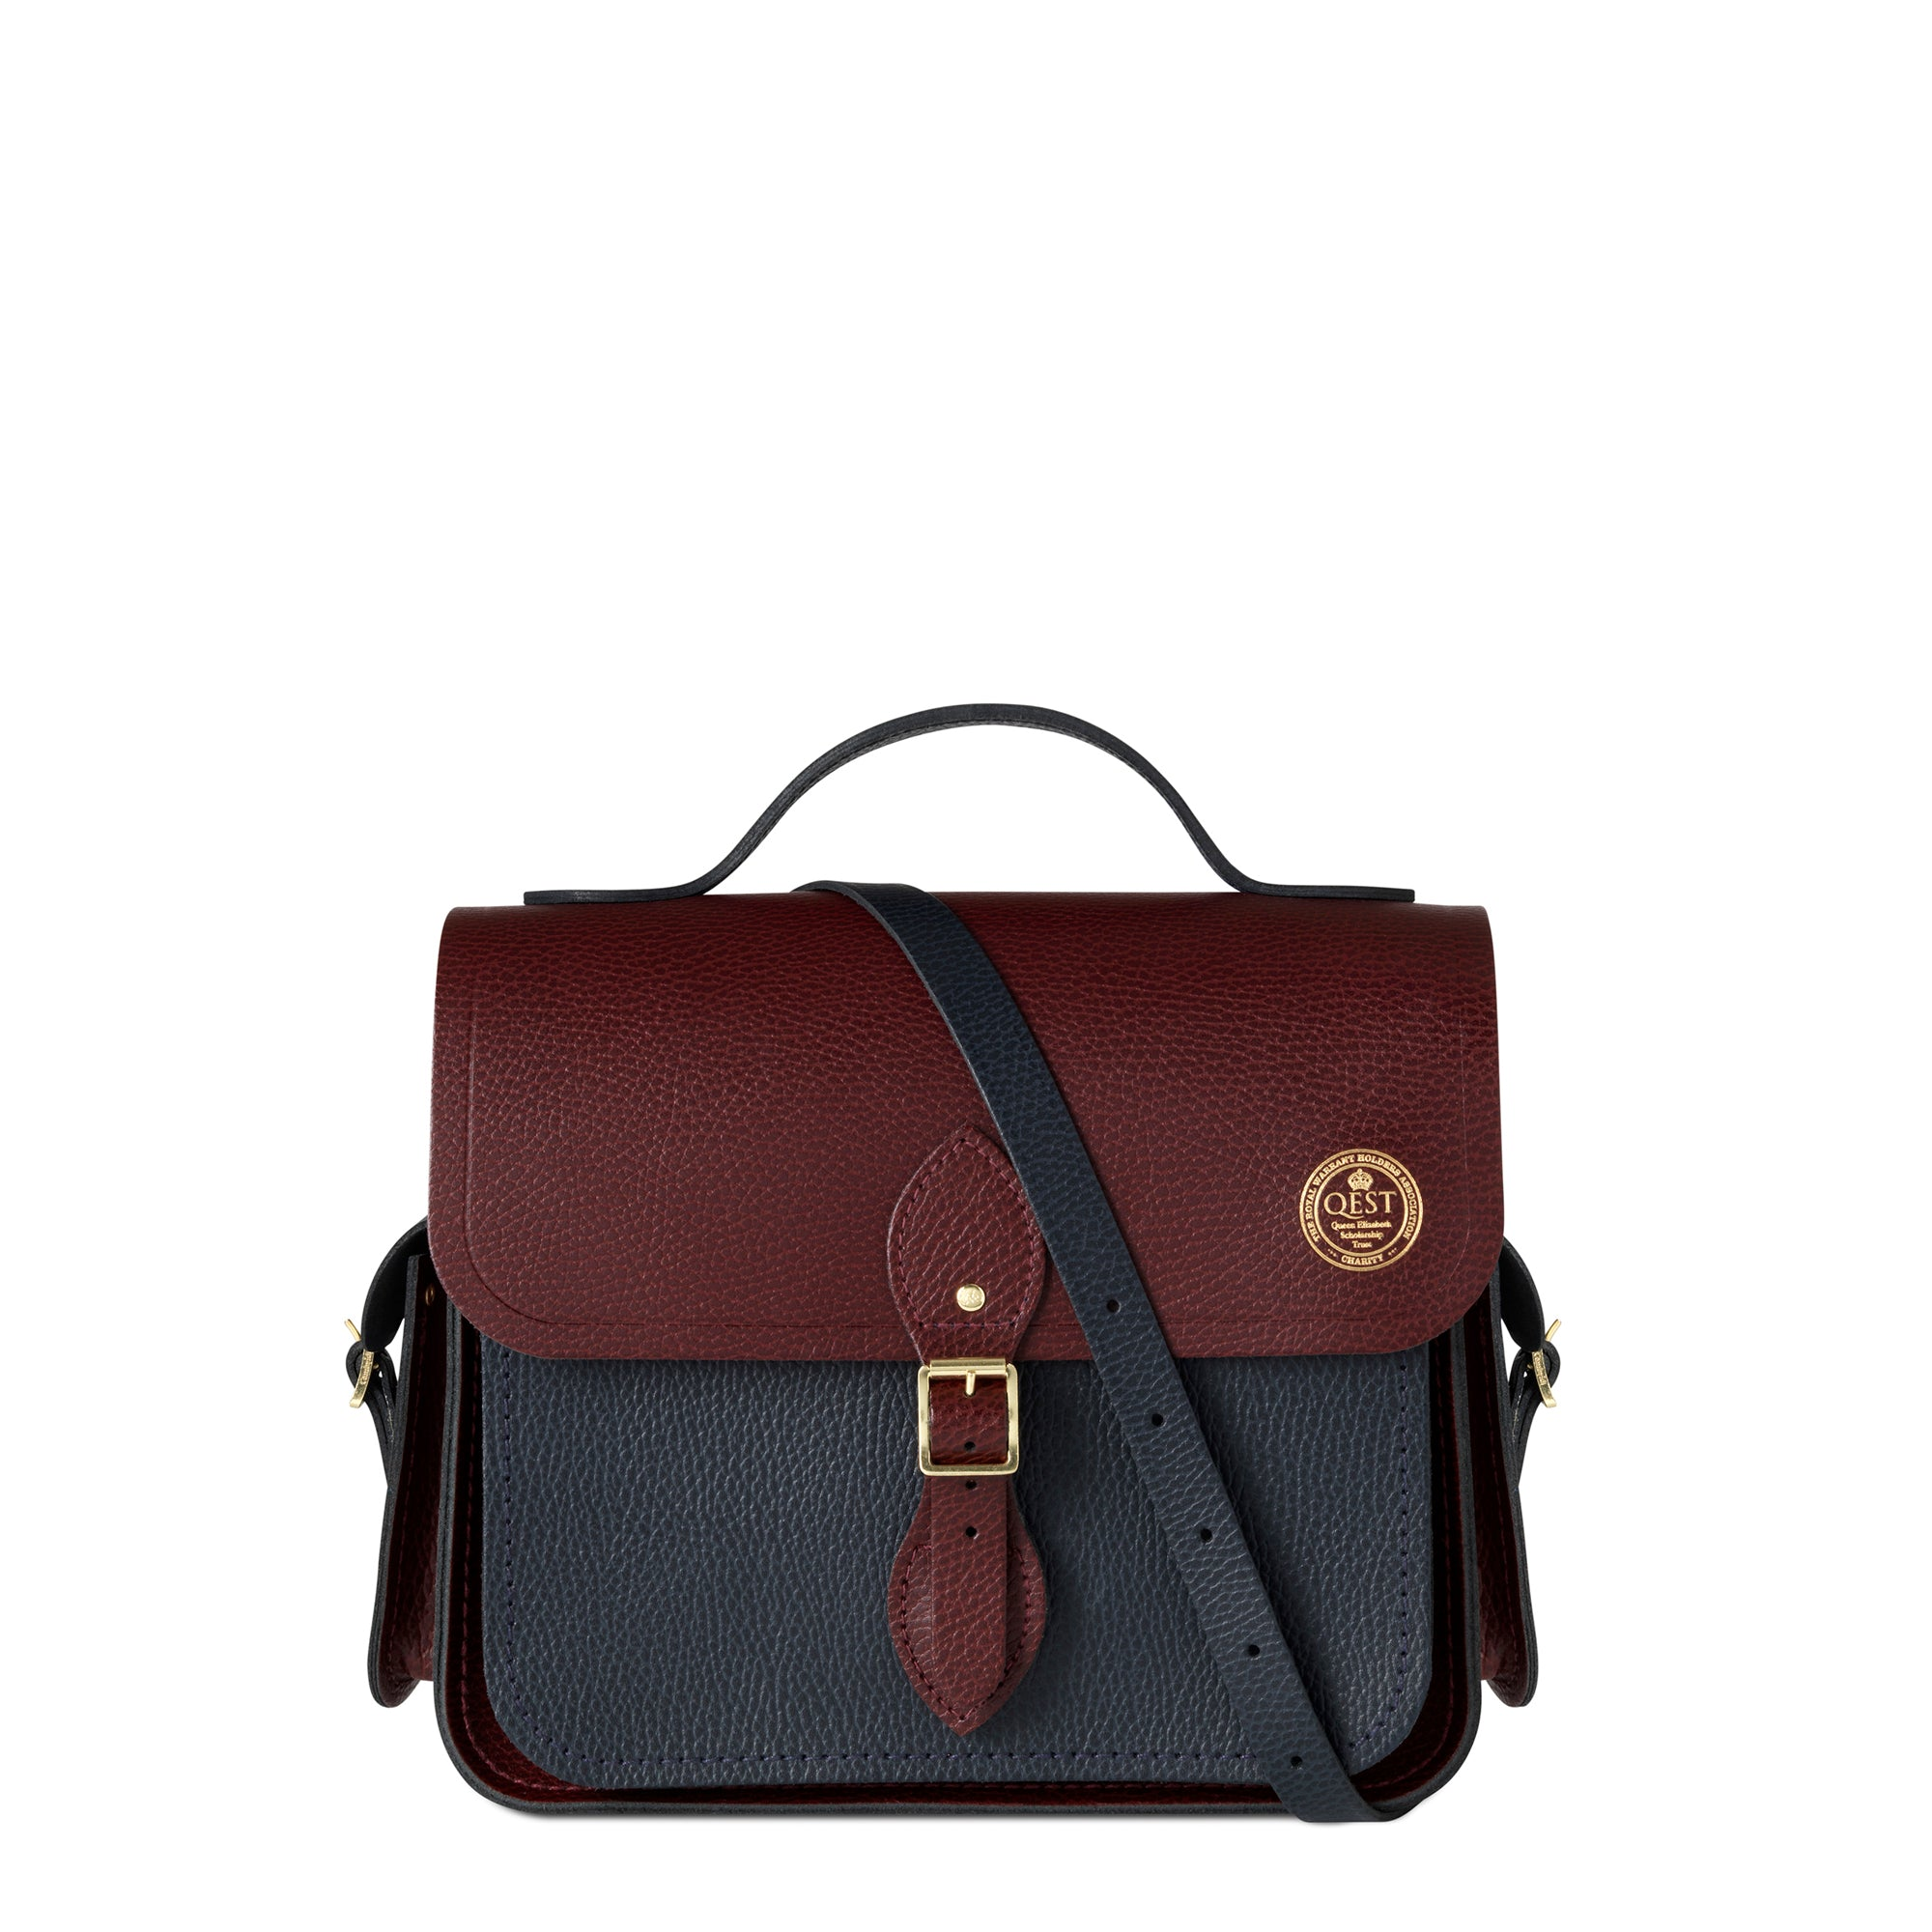 Qest Large Traveller Bag with Side Pockets in Grain Leather - Oxblood & Navy